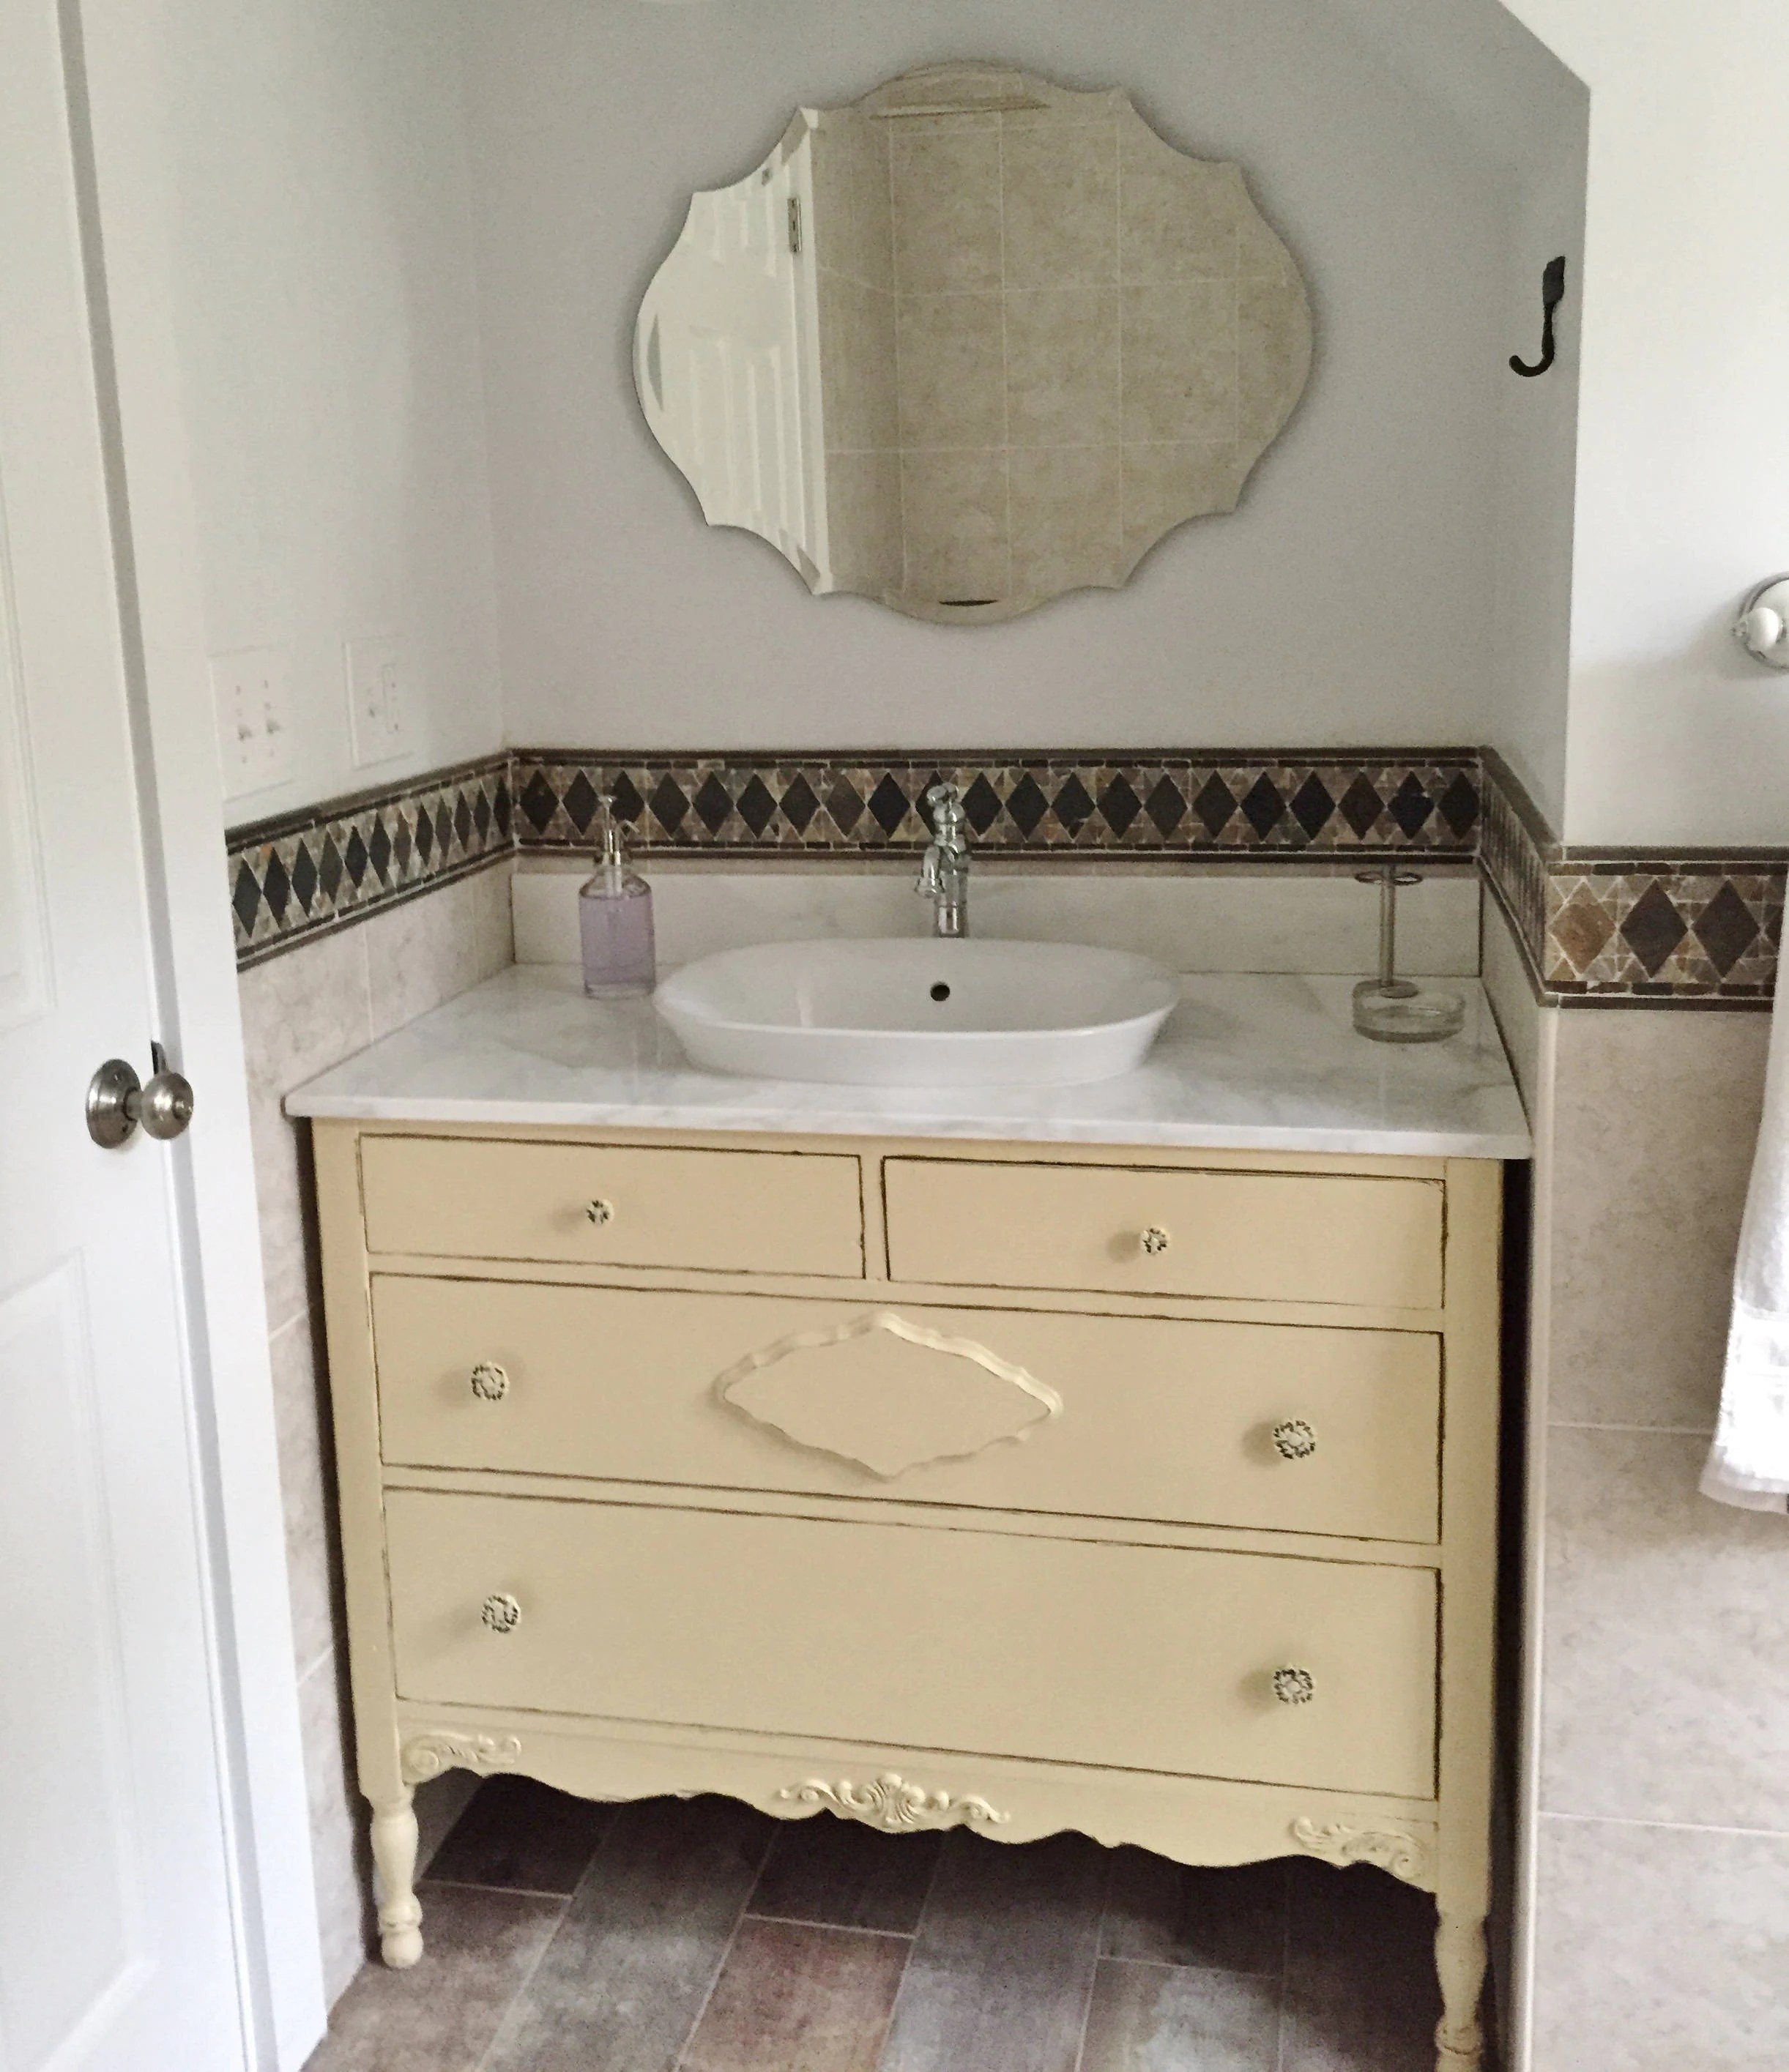 Bathroom Vanity From Antique Dresser Custom Order In Your Size Color And Style Antique Bathroom Vanity Single Or Double Sink